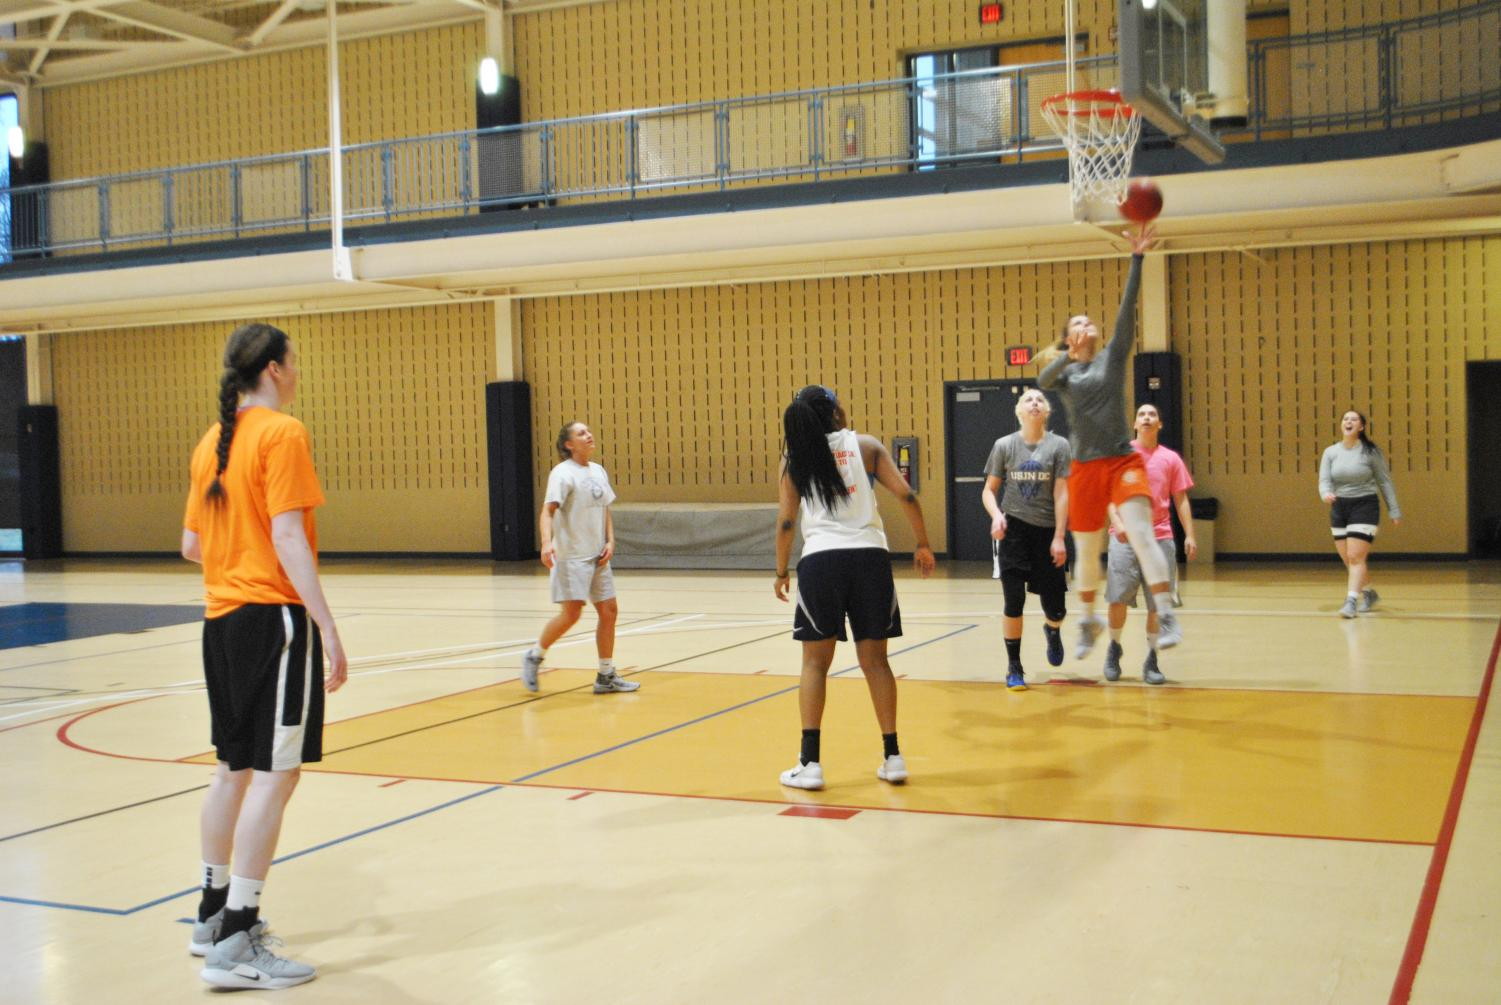 The women's basketball team held a pick-up practice March 21 at the Wellness Center.